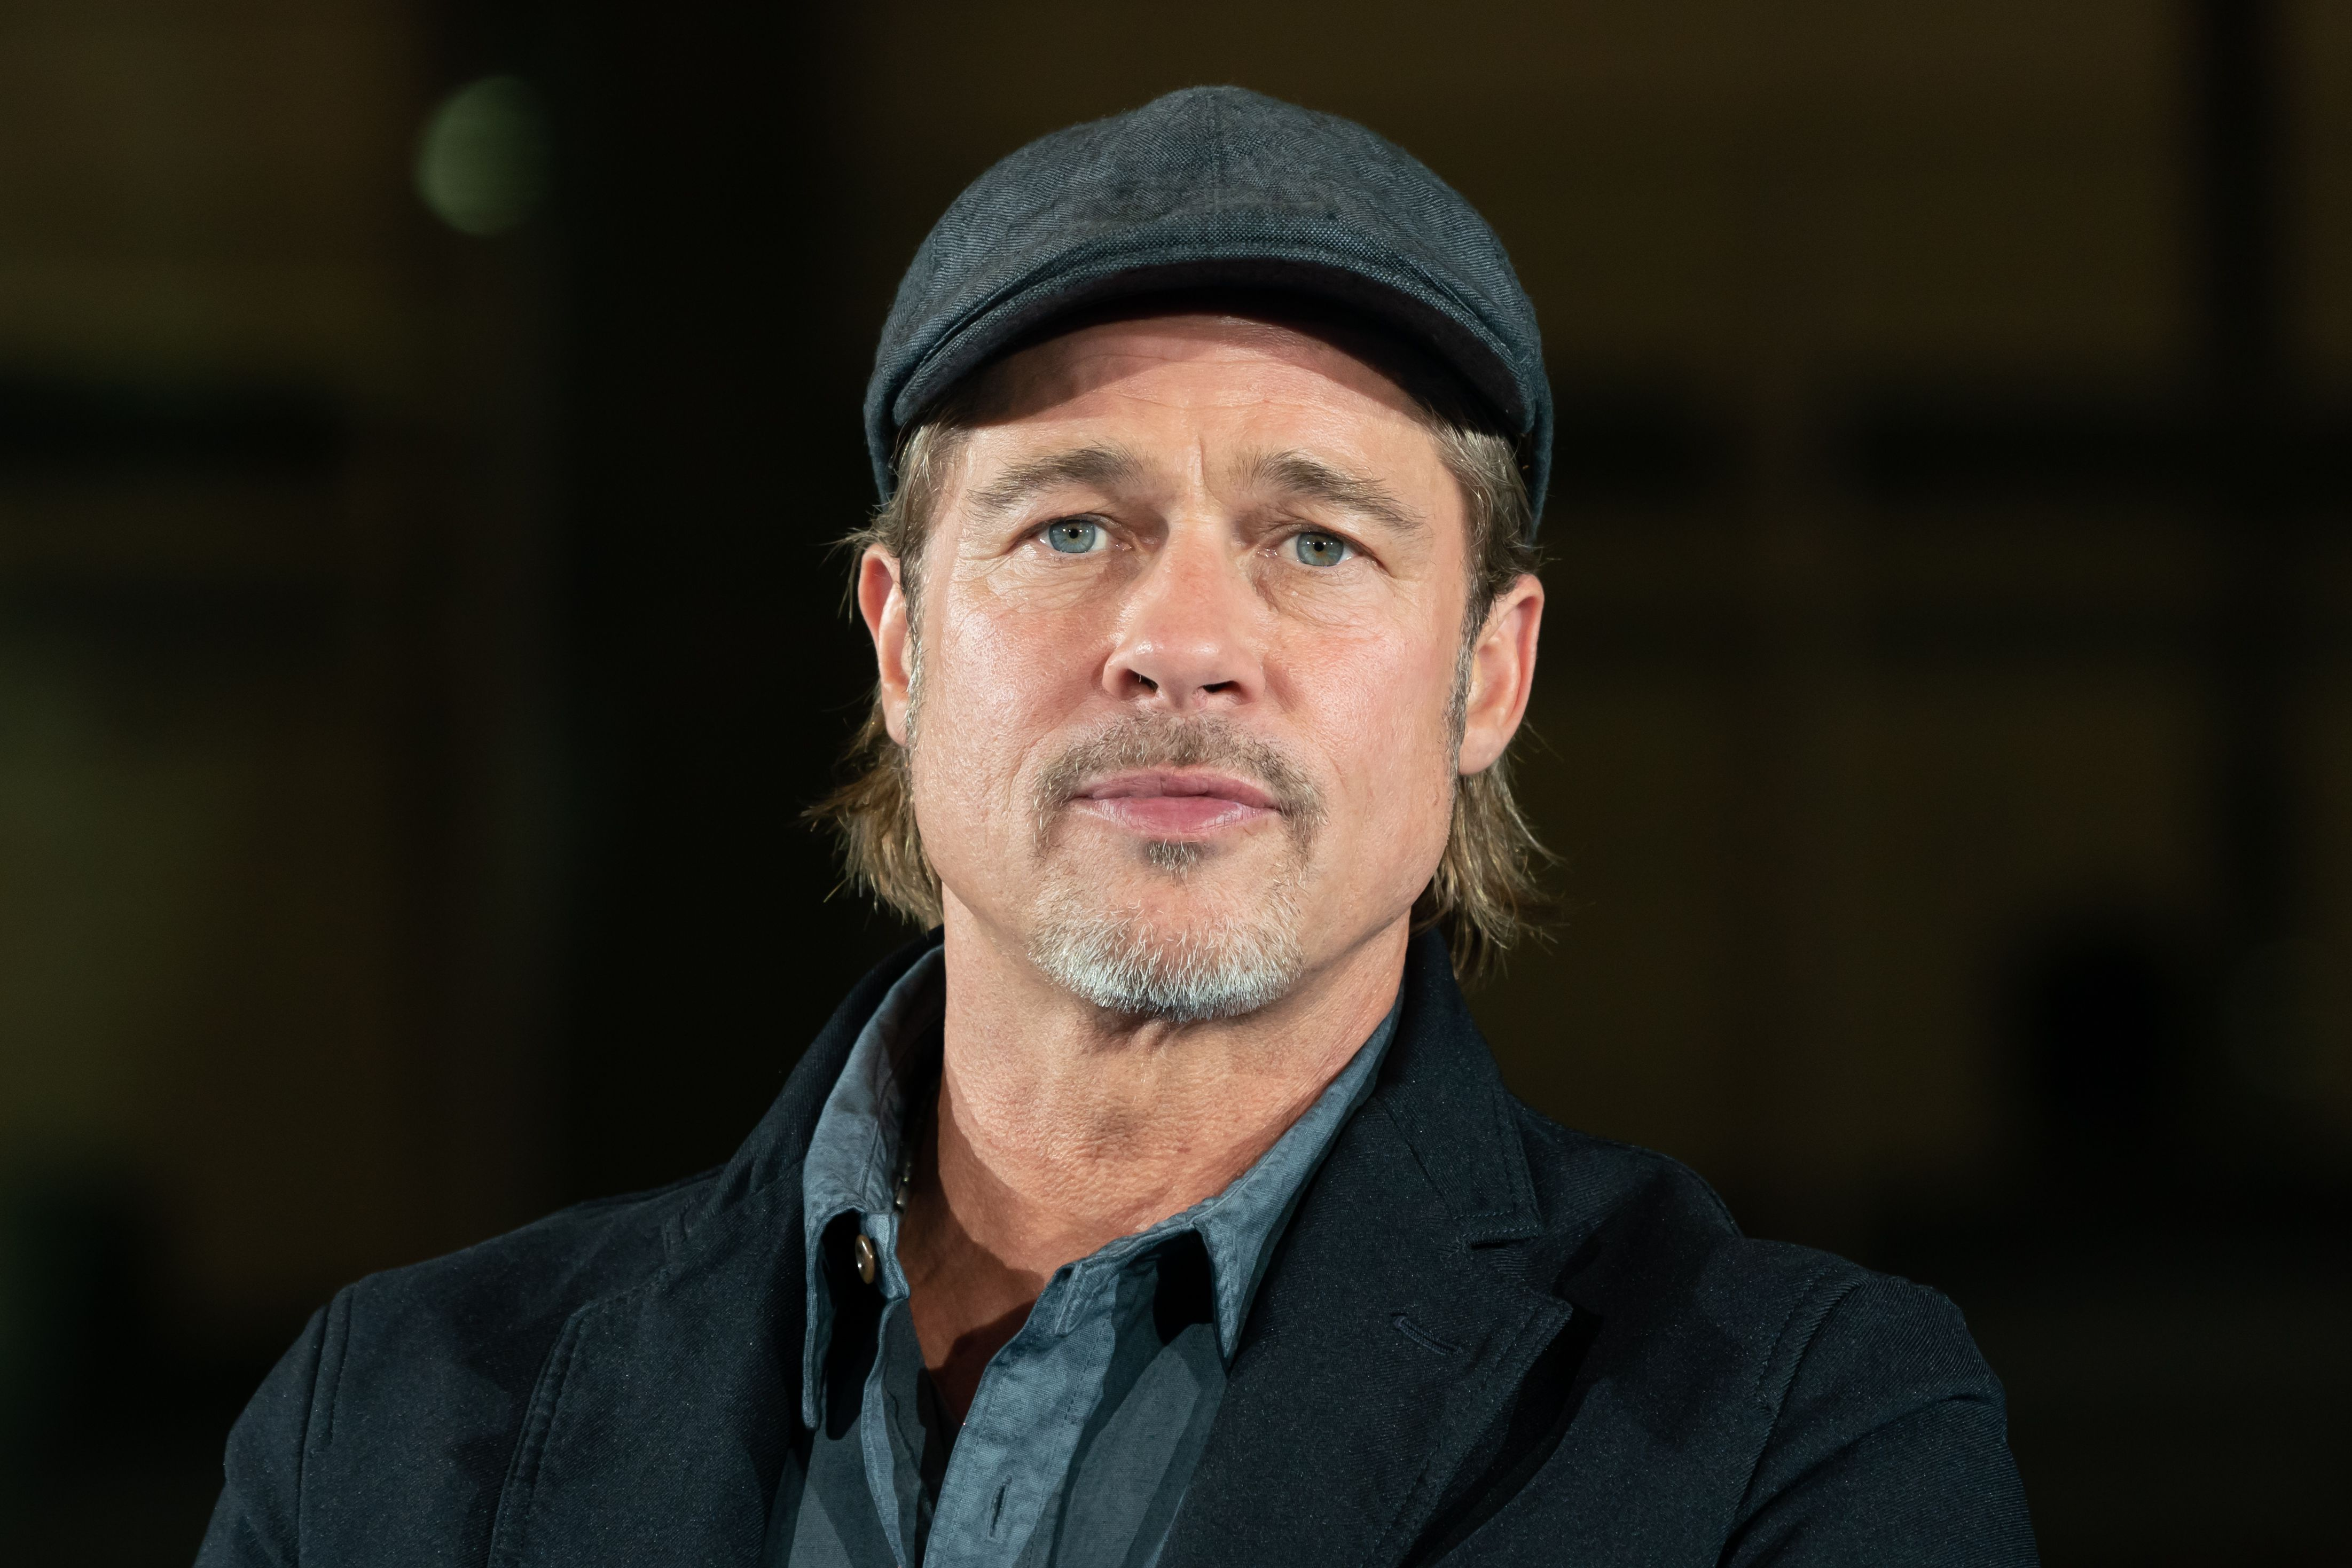 Brad Pitt: 'I'm Gonna Abstain' From Oscar Campaigning for 'Hollywood' and 'Ad Astra'